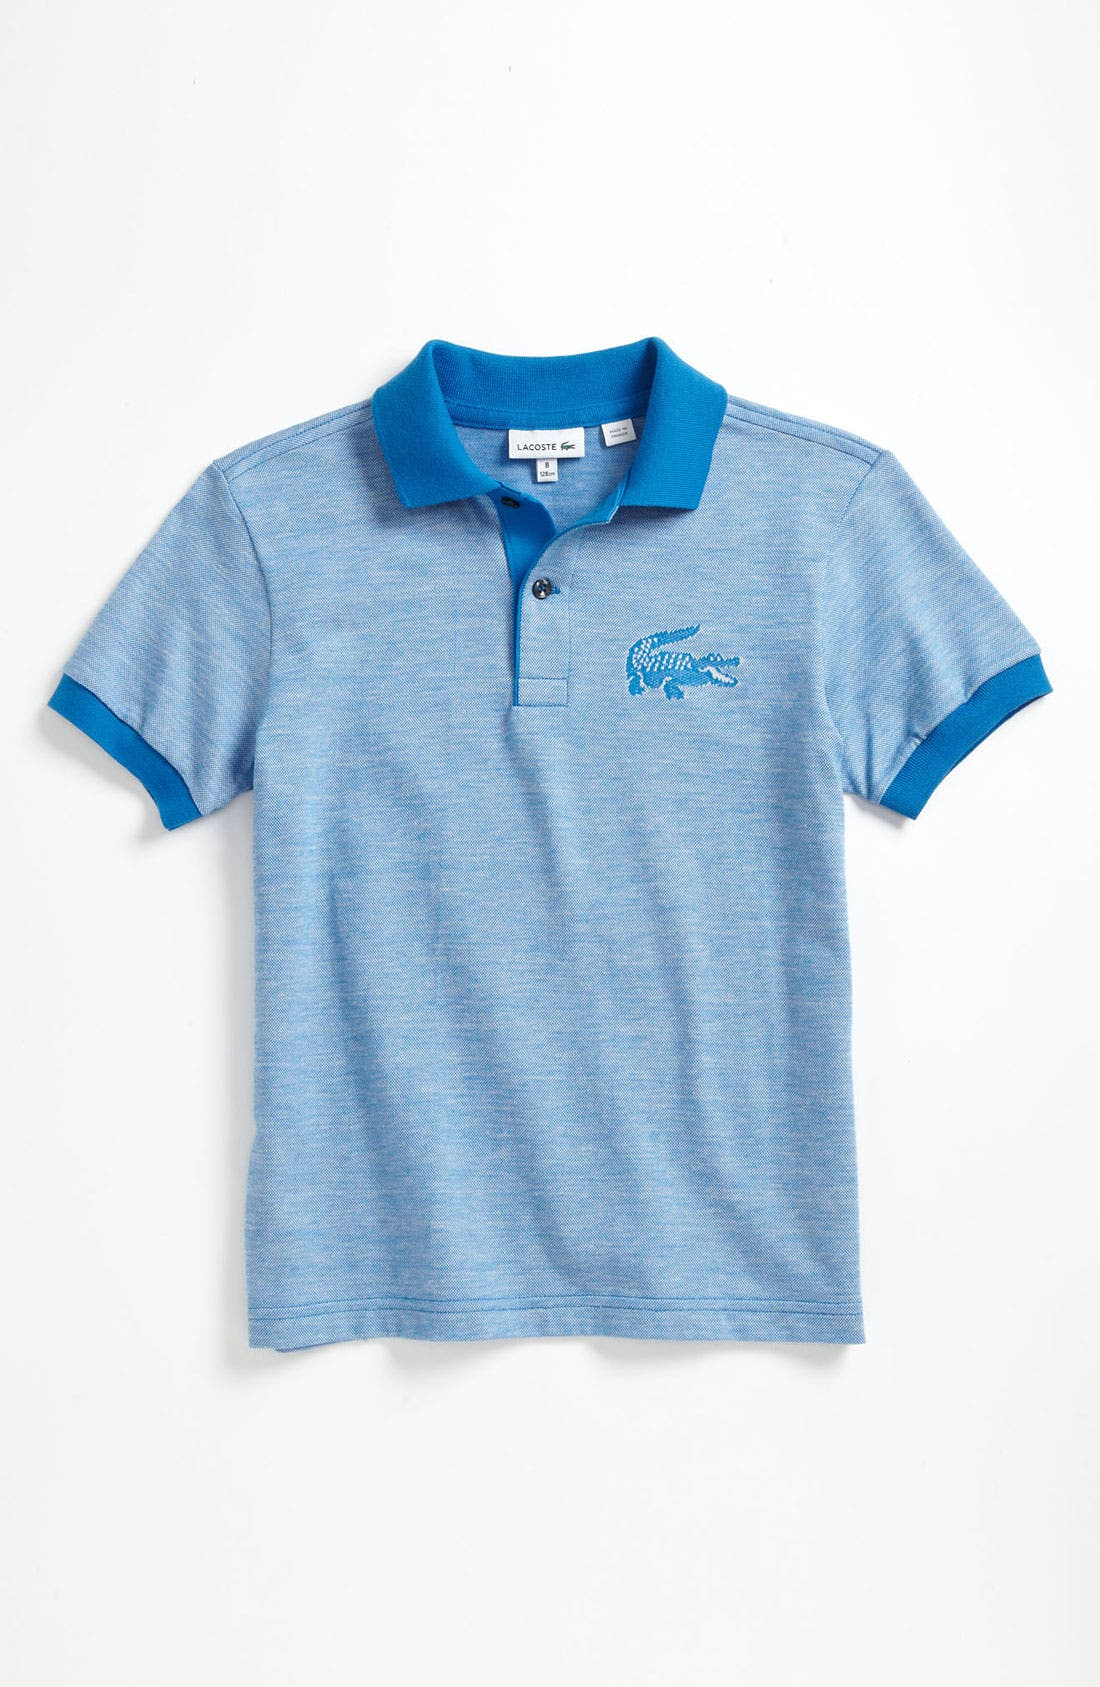 Alternate Image 1 Selected - Lacoste Heathered Jersey Polo (Little Boys & Big Boys)